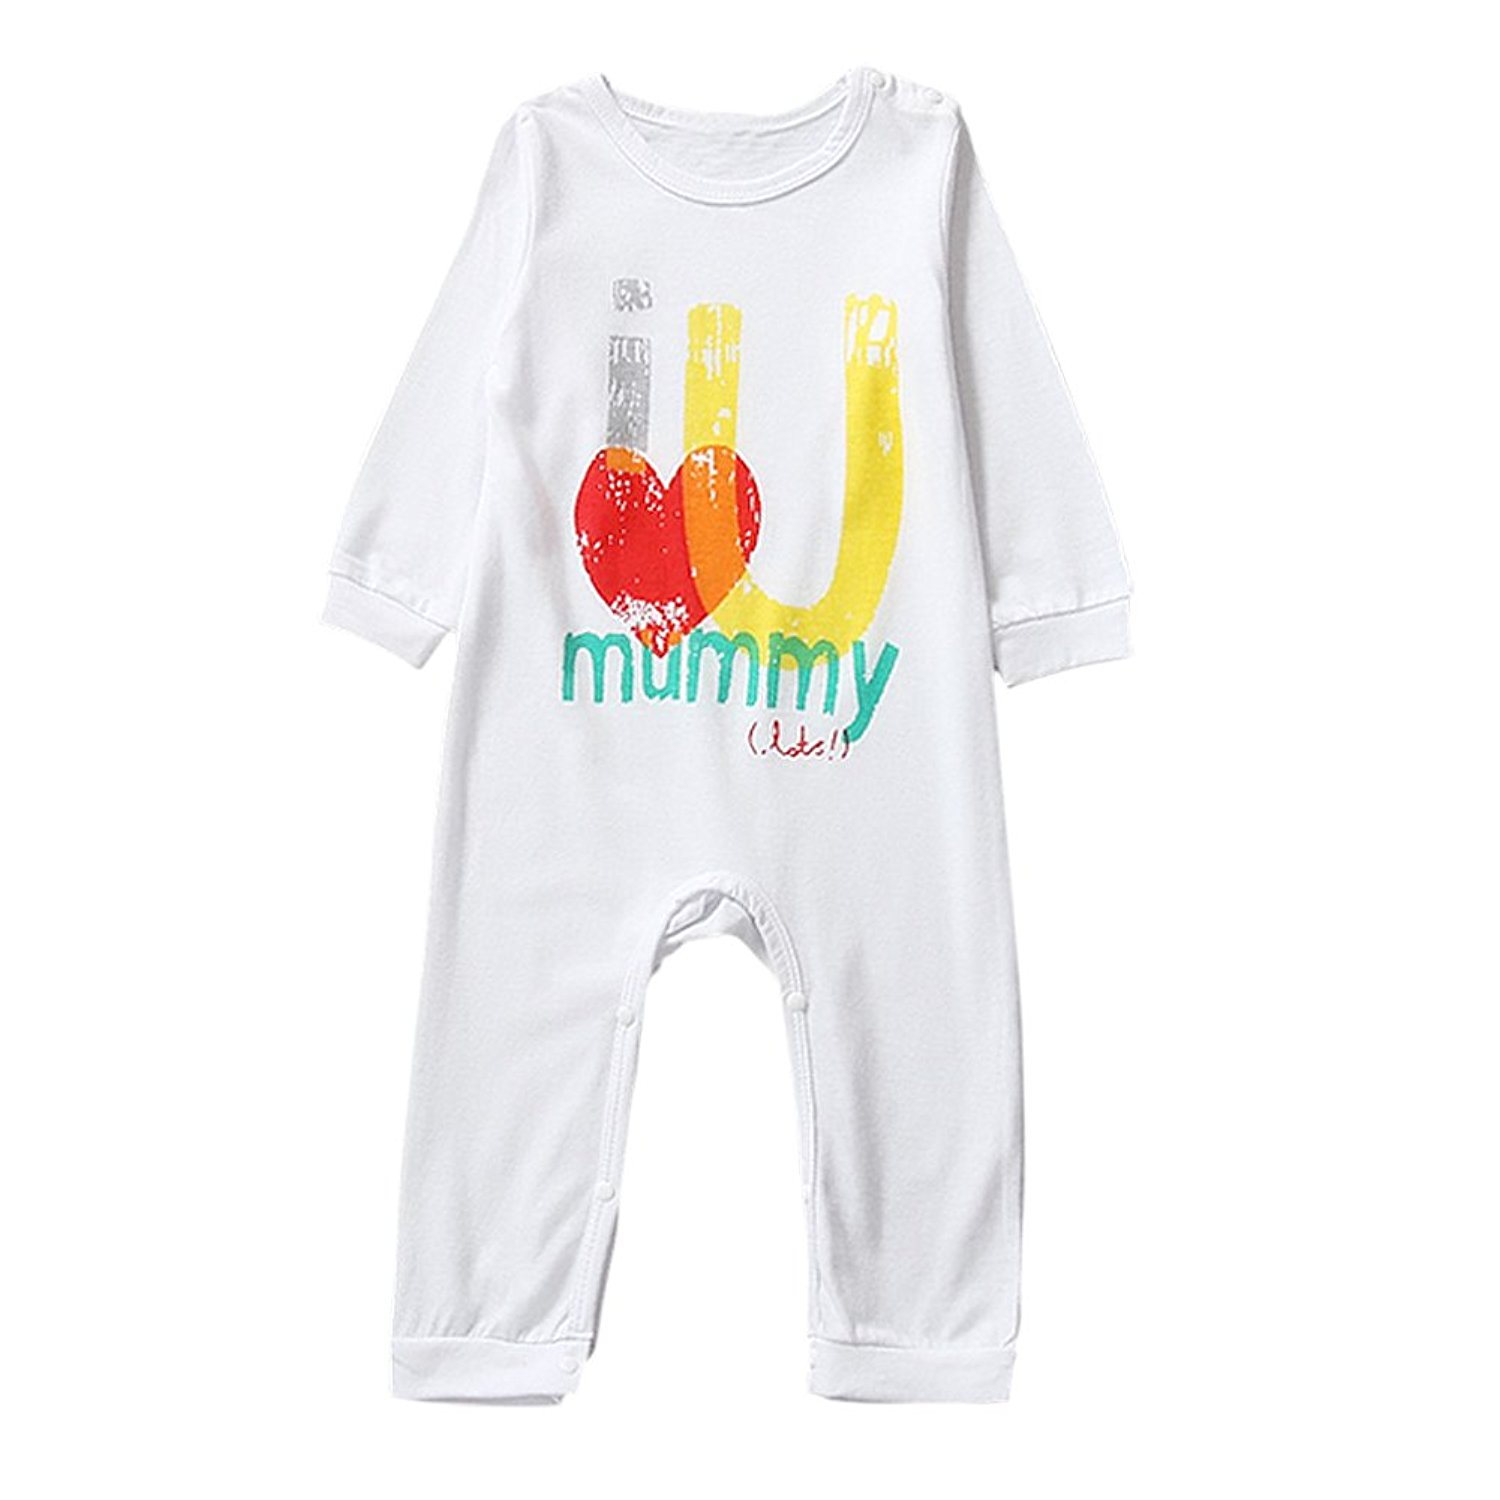 e2c754acb47d SODIAL(R) baby clothing unisex baby rompers printed I love you mummy white  90cm